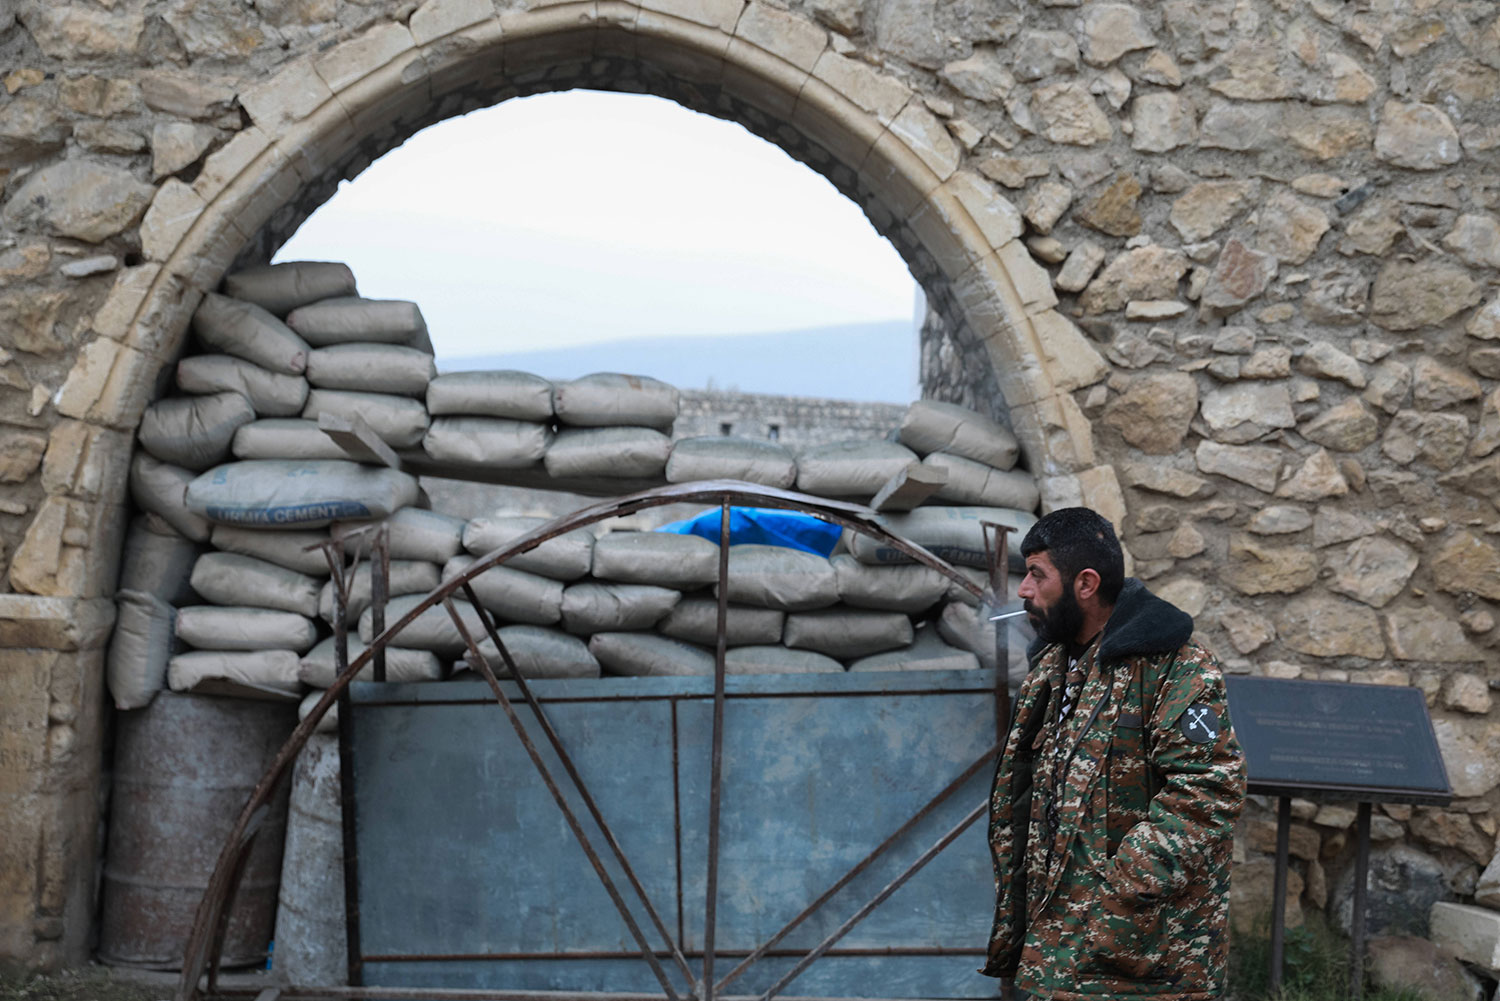 The Karabakh War – Another Tragedy in the Conflict-ridden South Caucasus